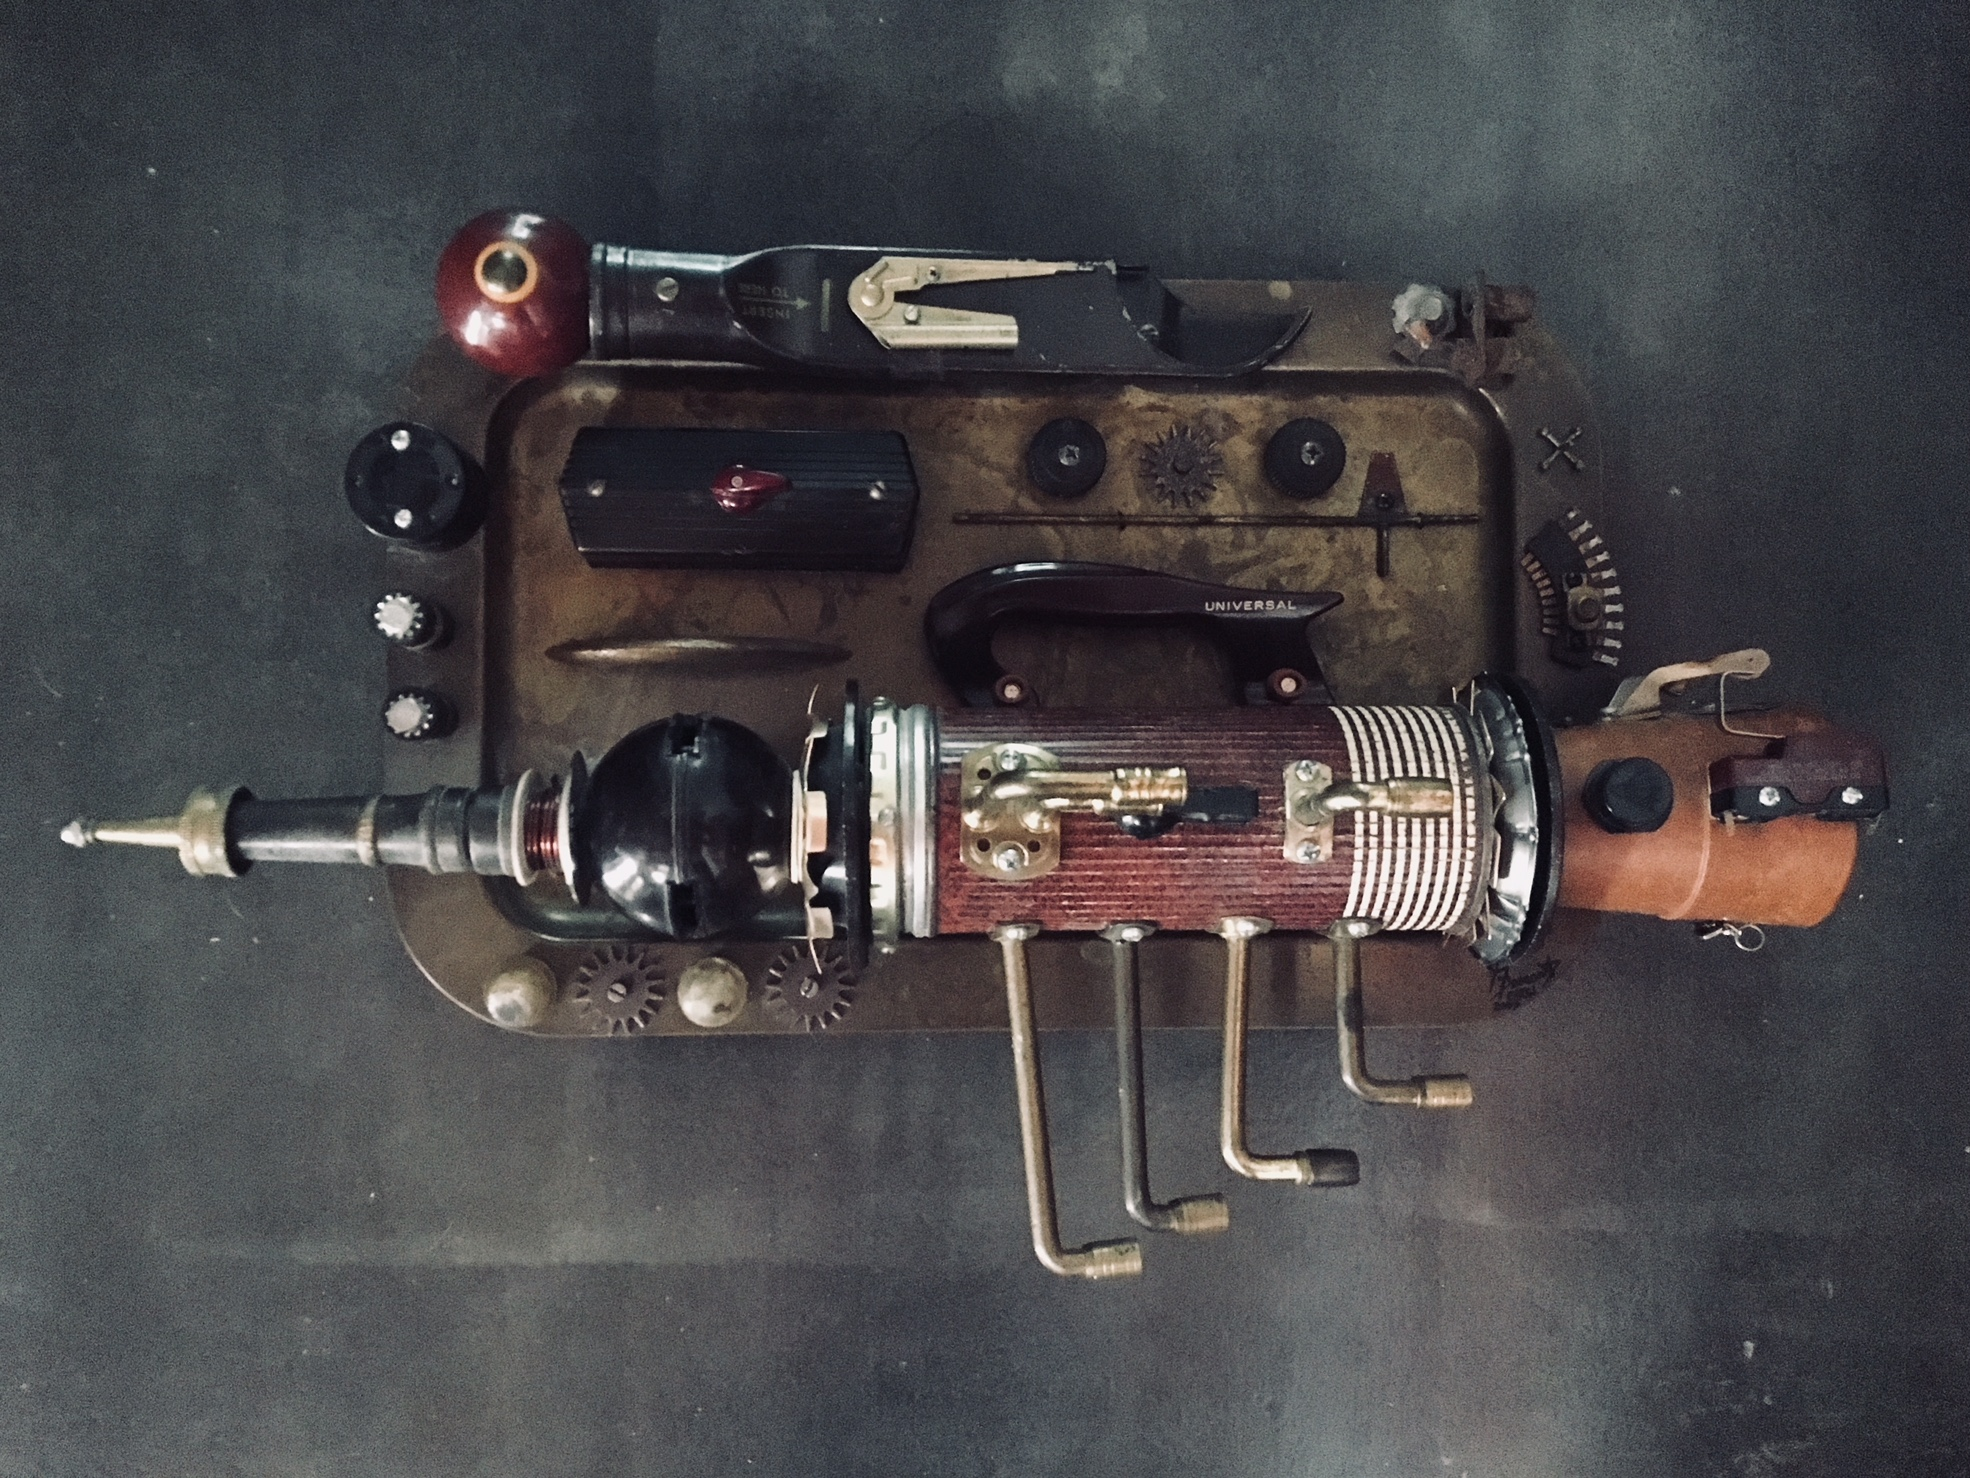 GalleryOonH-Jimmy Descant-Universal Model-1998-Found Object Illuminate Assemblage--1100.jpg